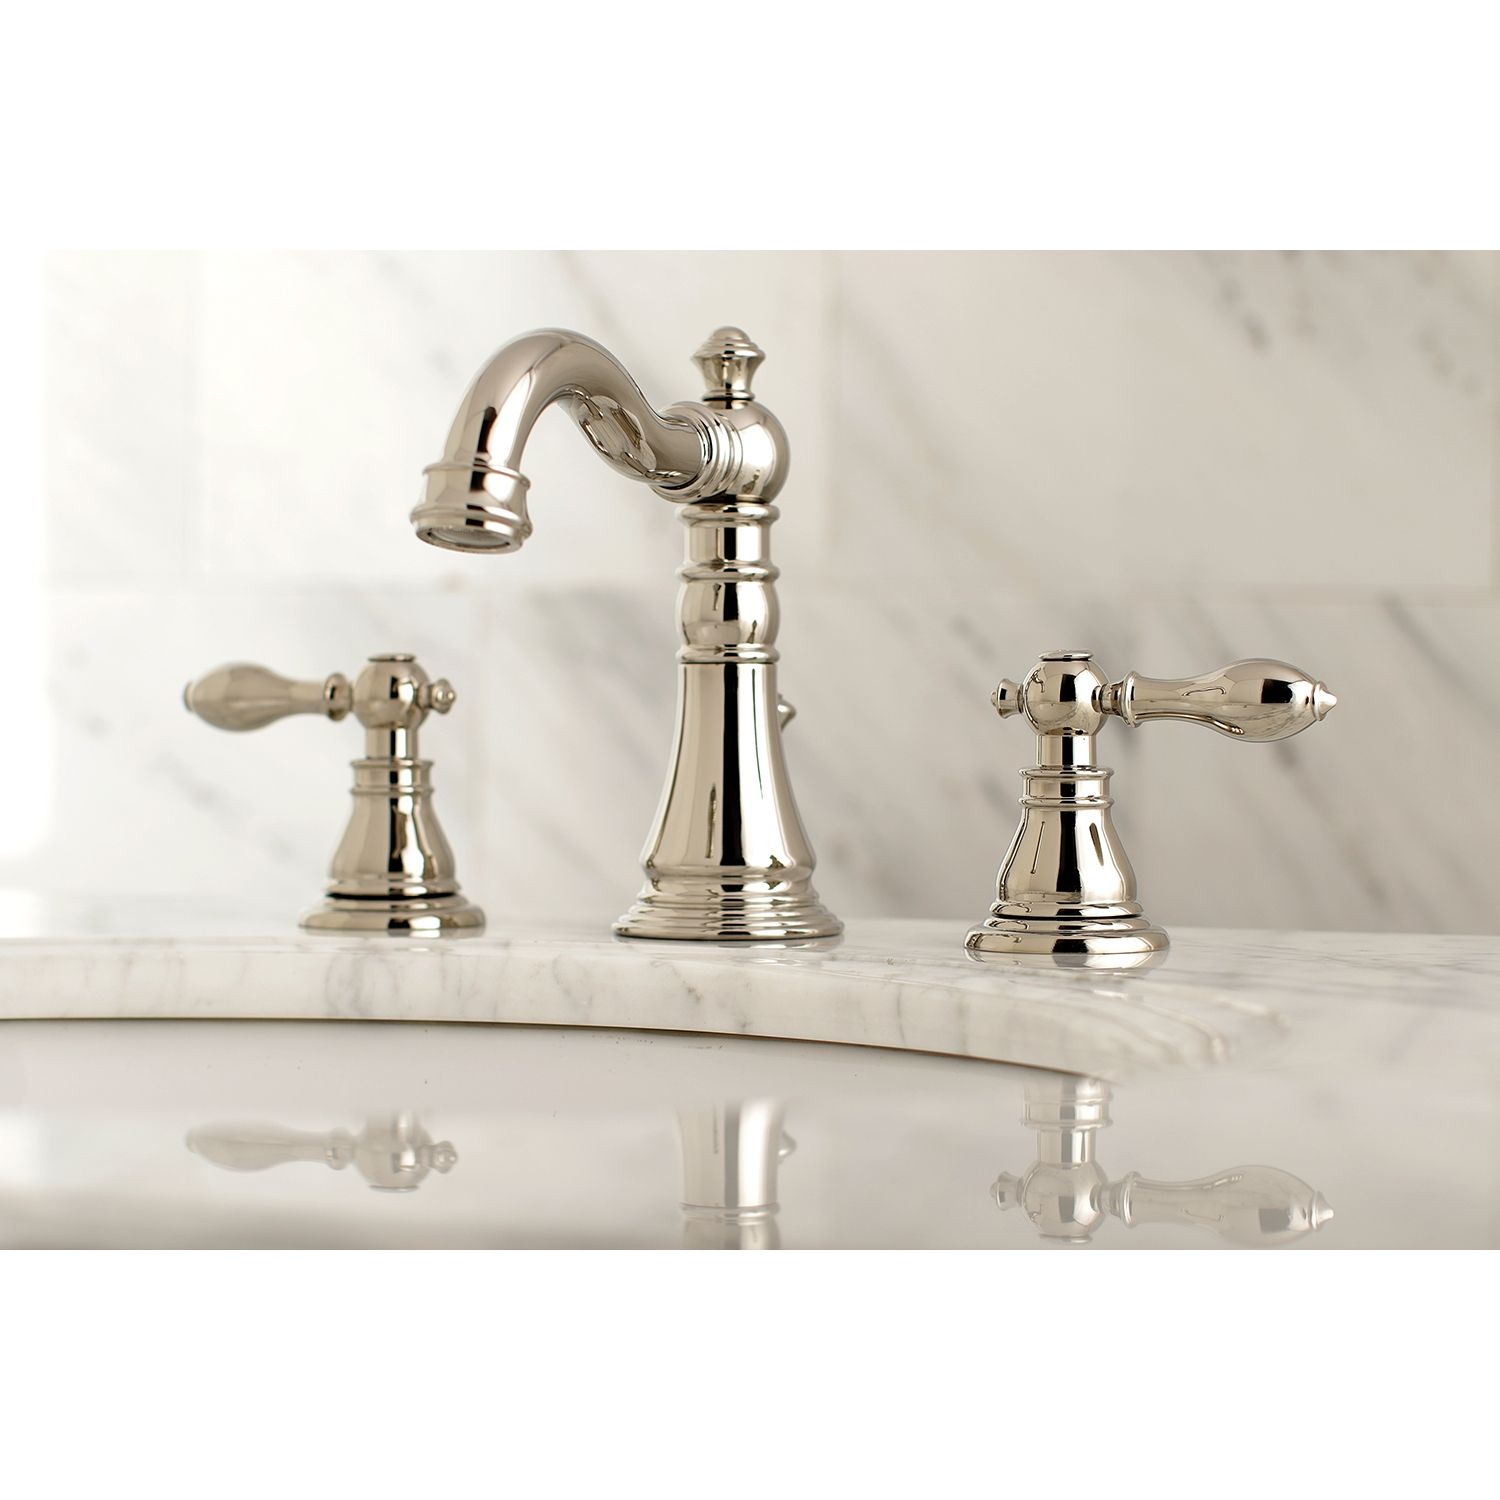 Kingston Brass American Classic Widespread Bathroom Faucet With Drain Polished Nickel Widespread Bathroom Faucet Bathroom Faucets Sink Faucets [ 1500 x 1500 Pixel ]